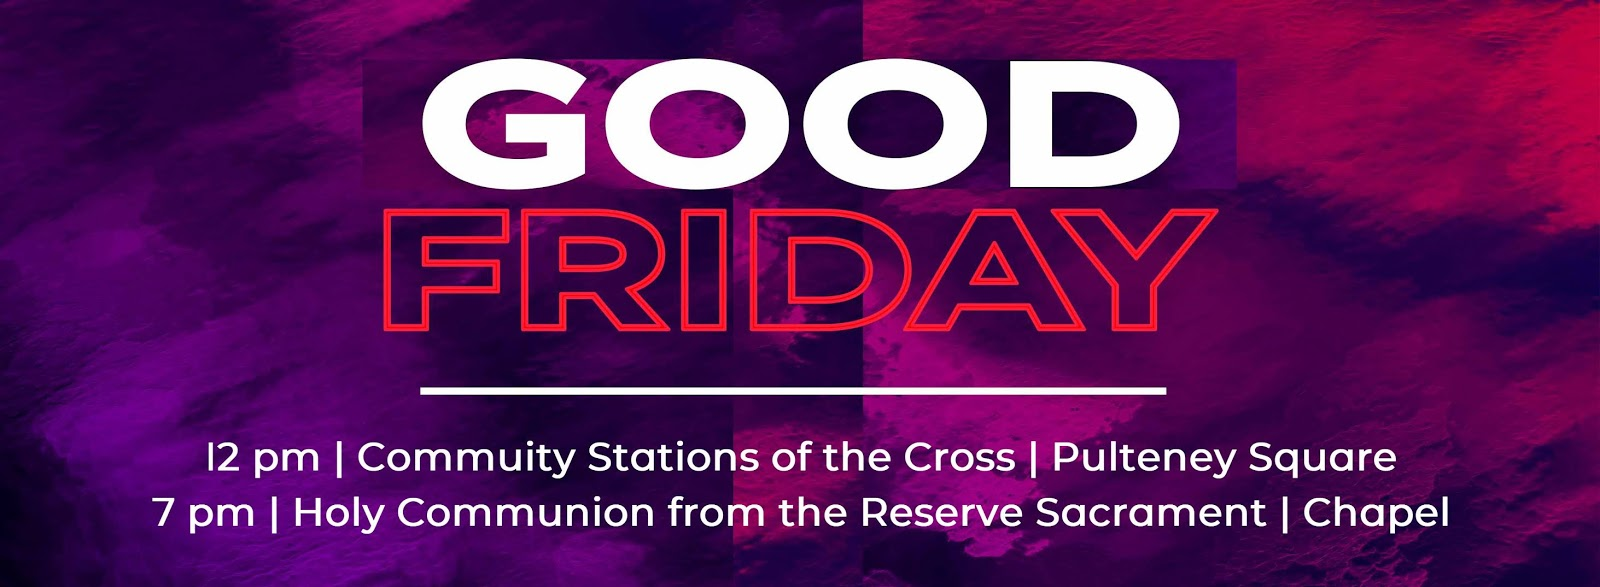 John Clinton Bradley: Holy Week & Easter Ads